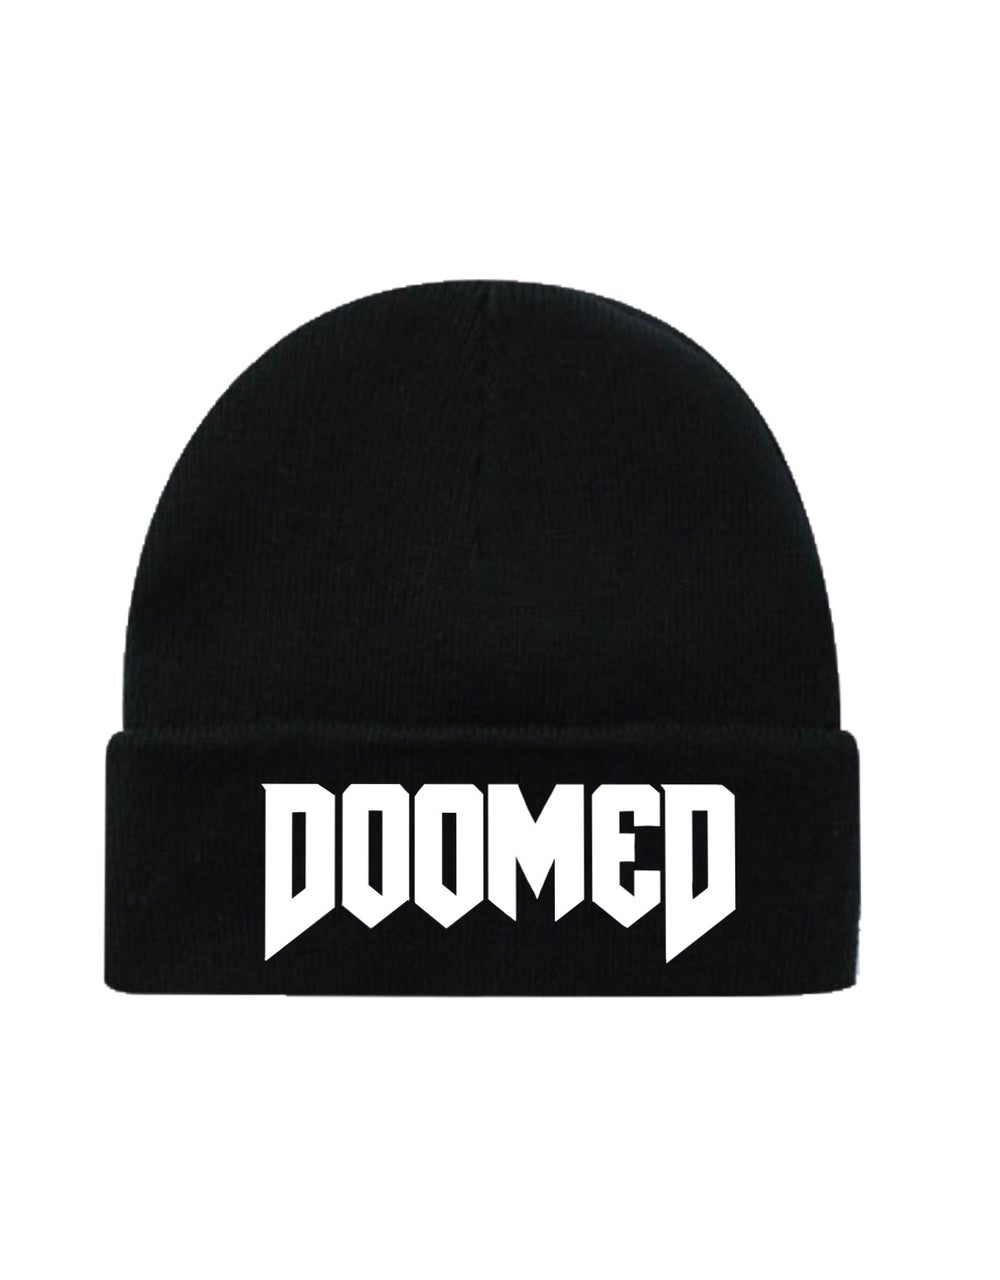 Image of DOOMED Cuffed Beanie